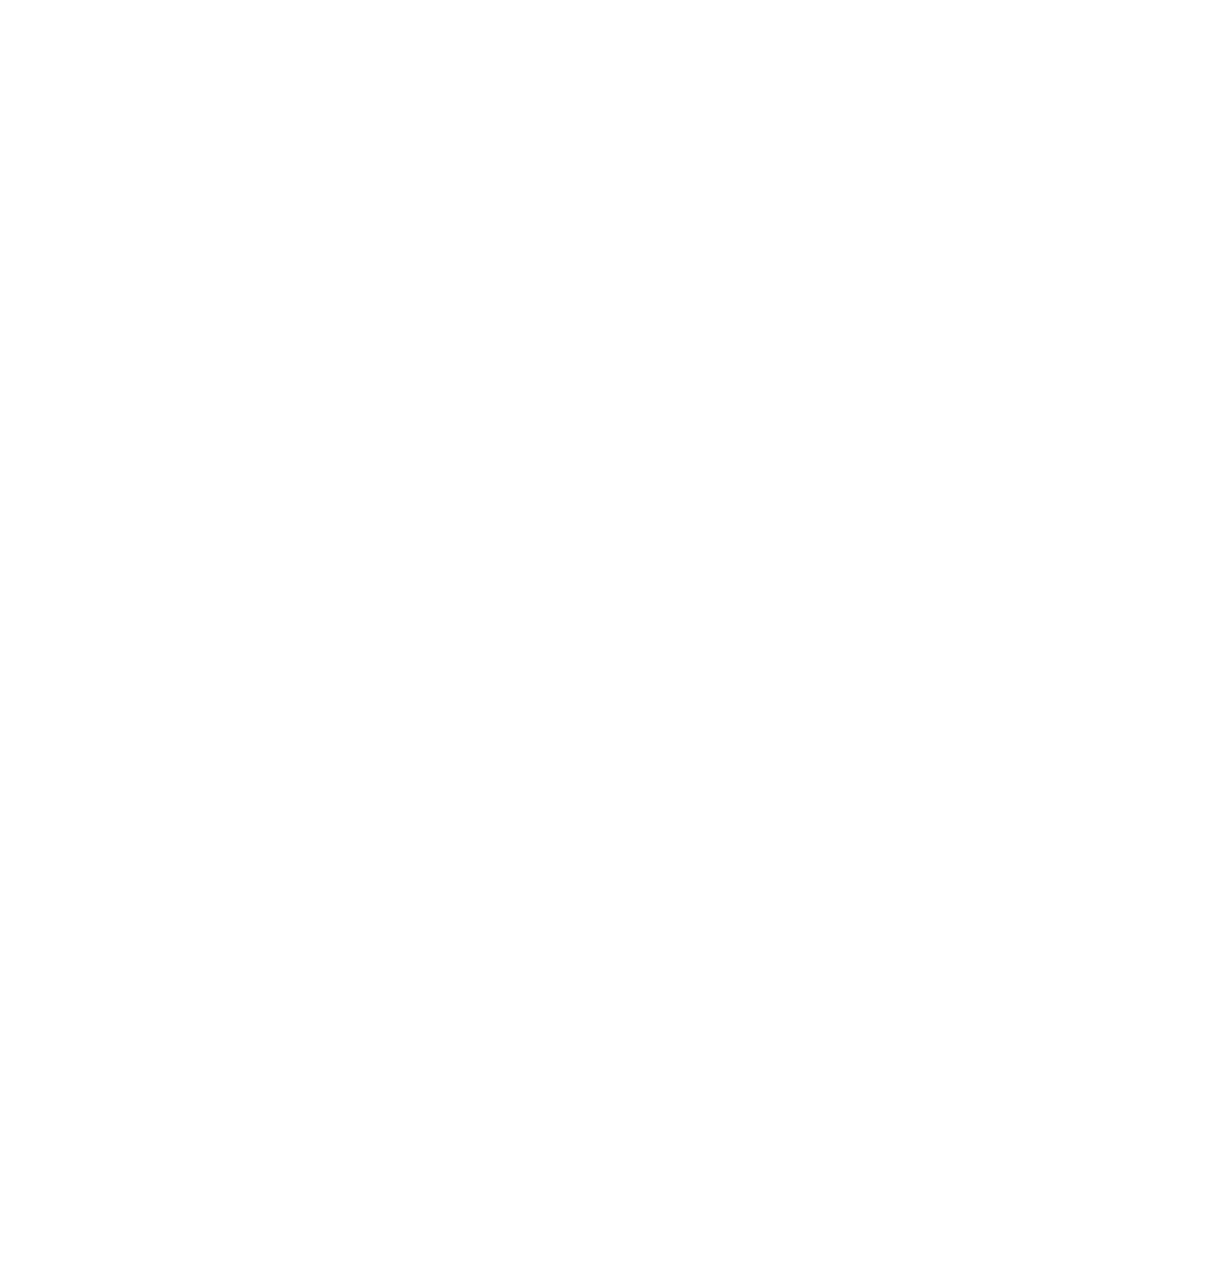 dicovery camp